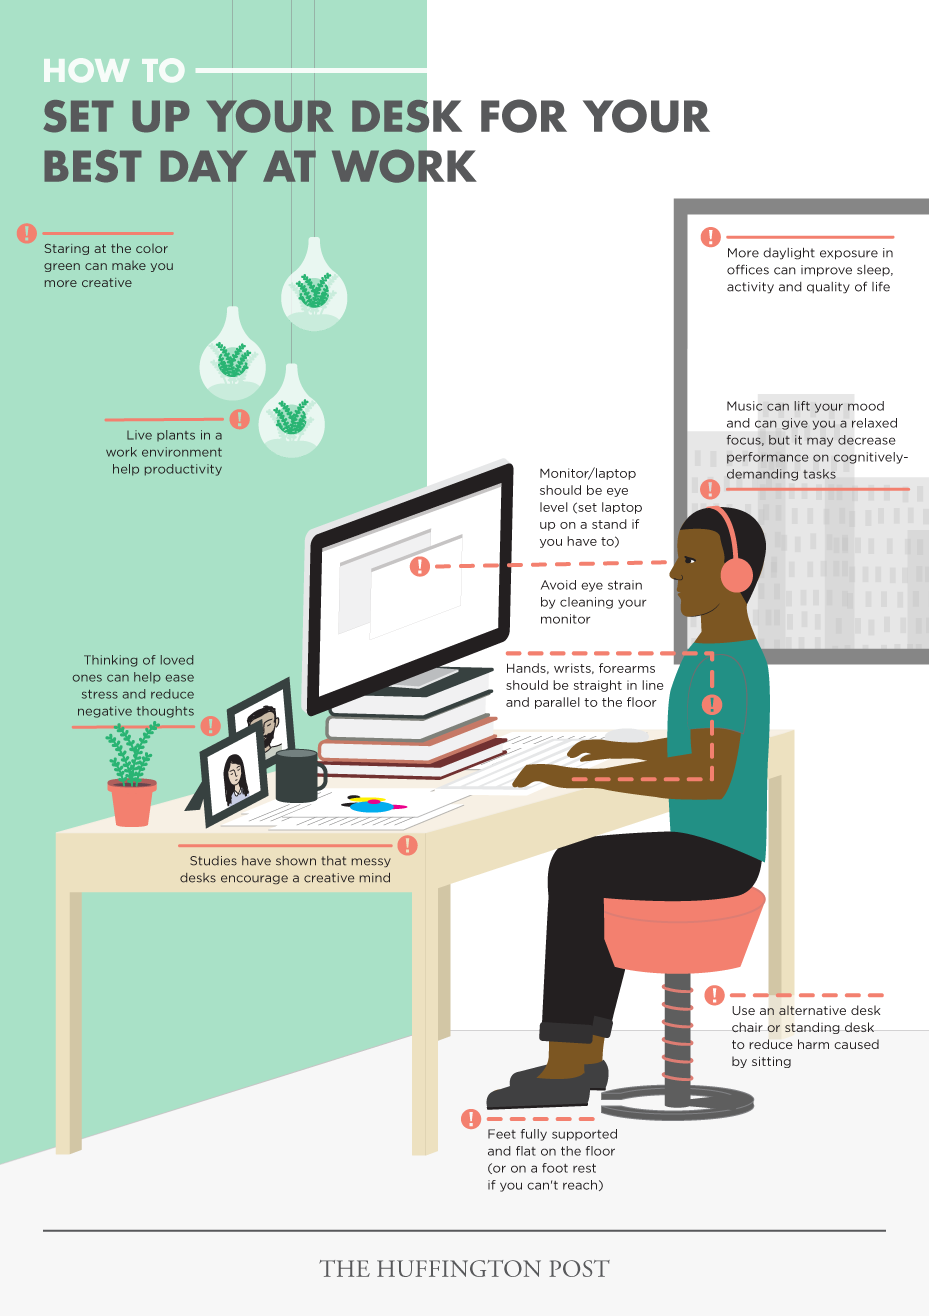 how to set up your desk for your best day at work infographic